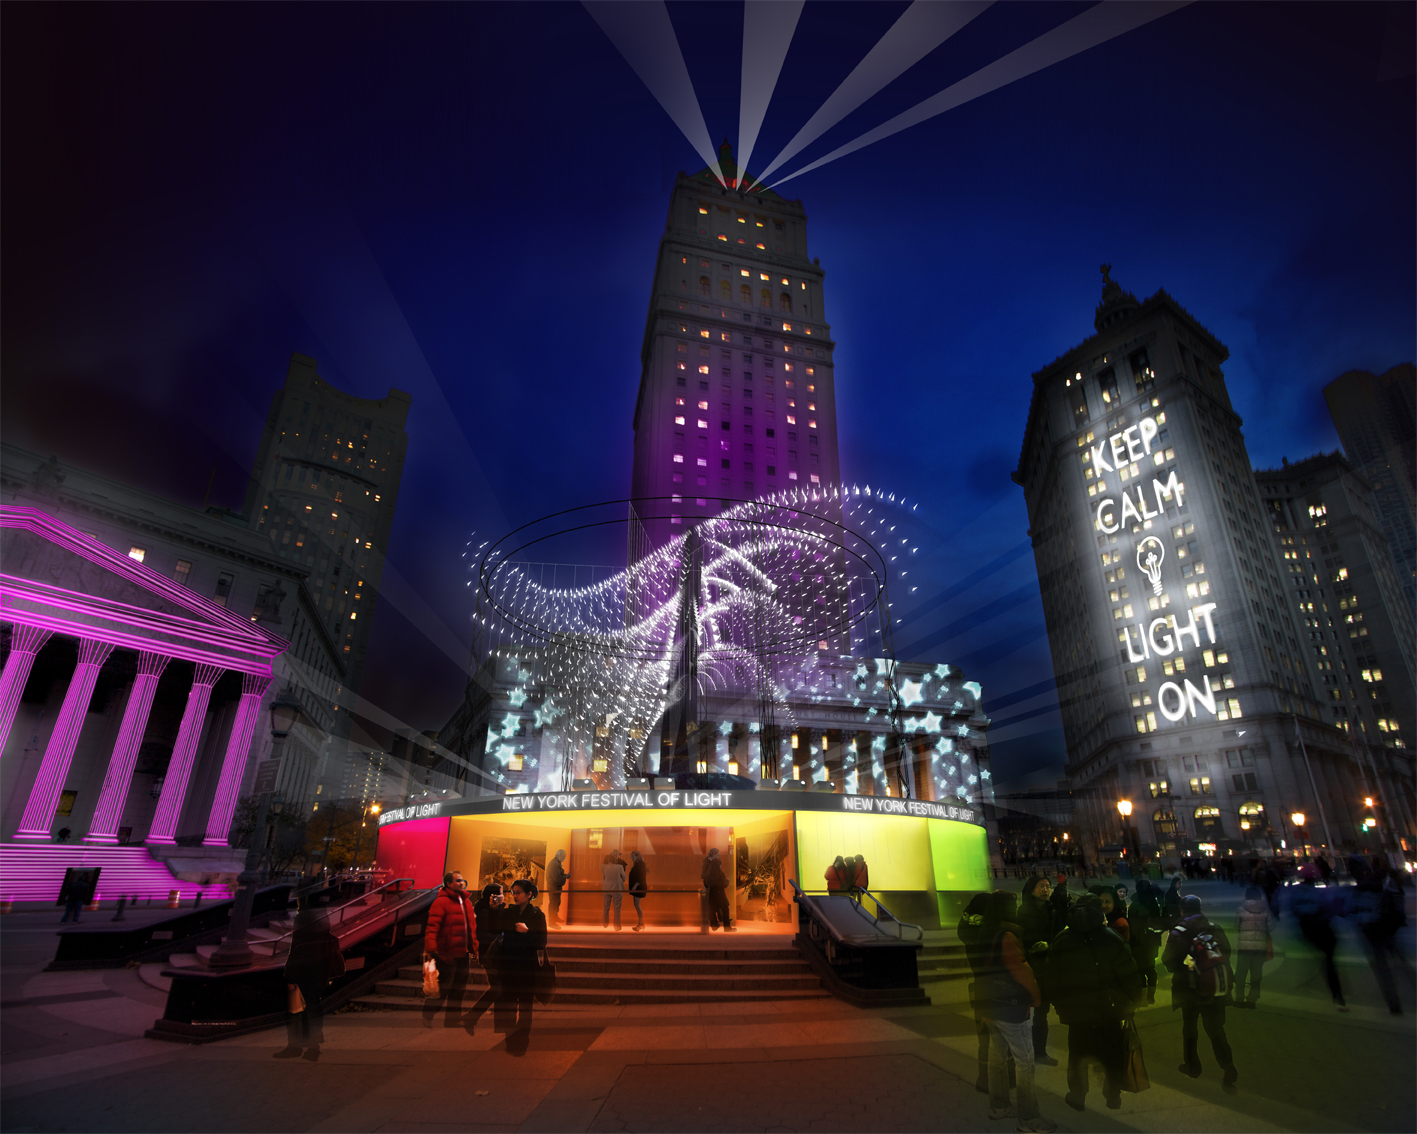 The New York Festival of Light 2014